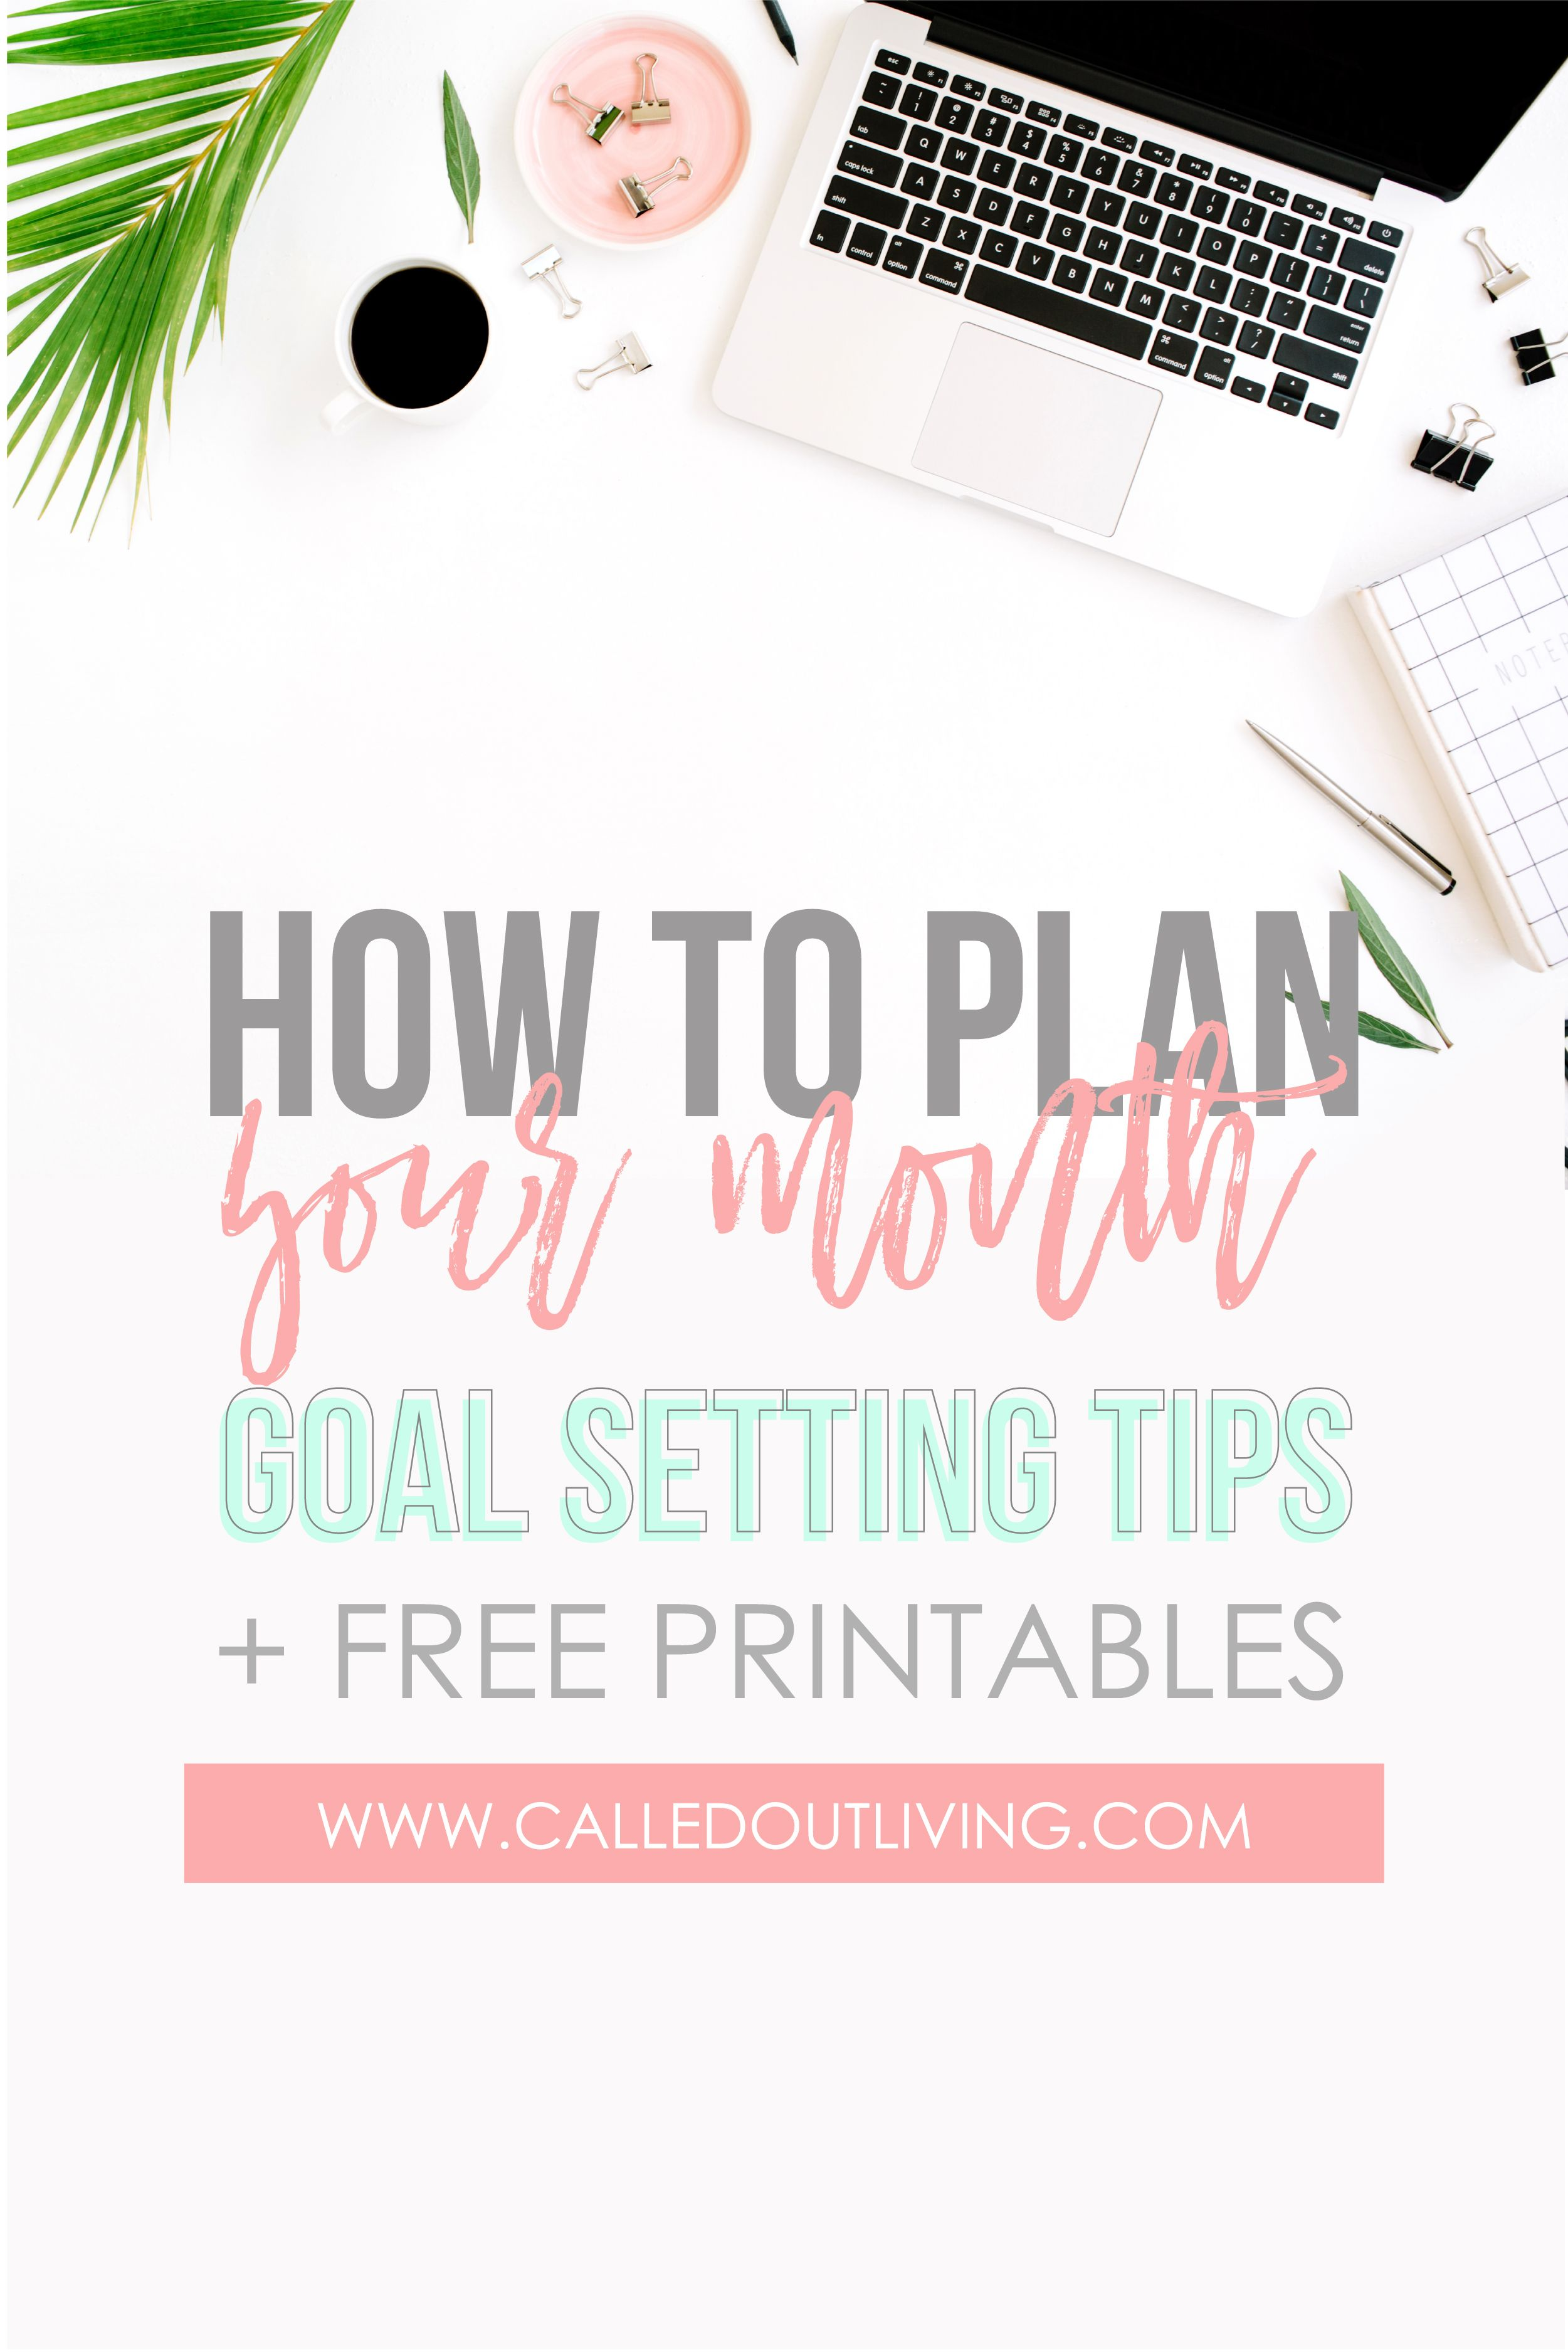 3 Tips To Plan Your Month